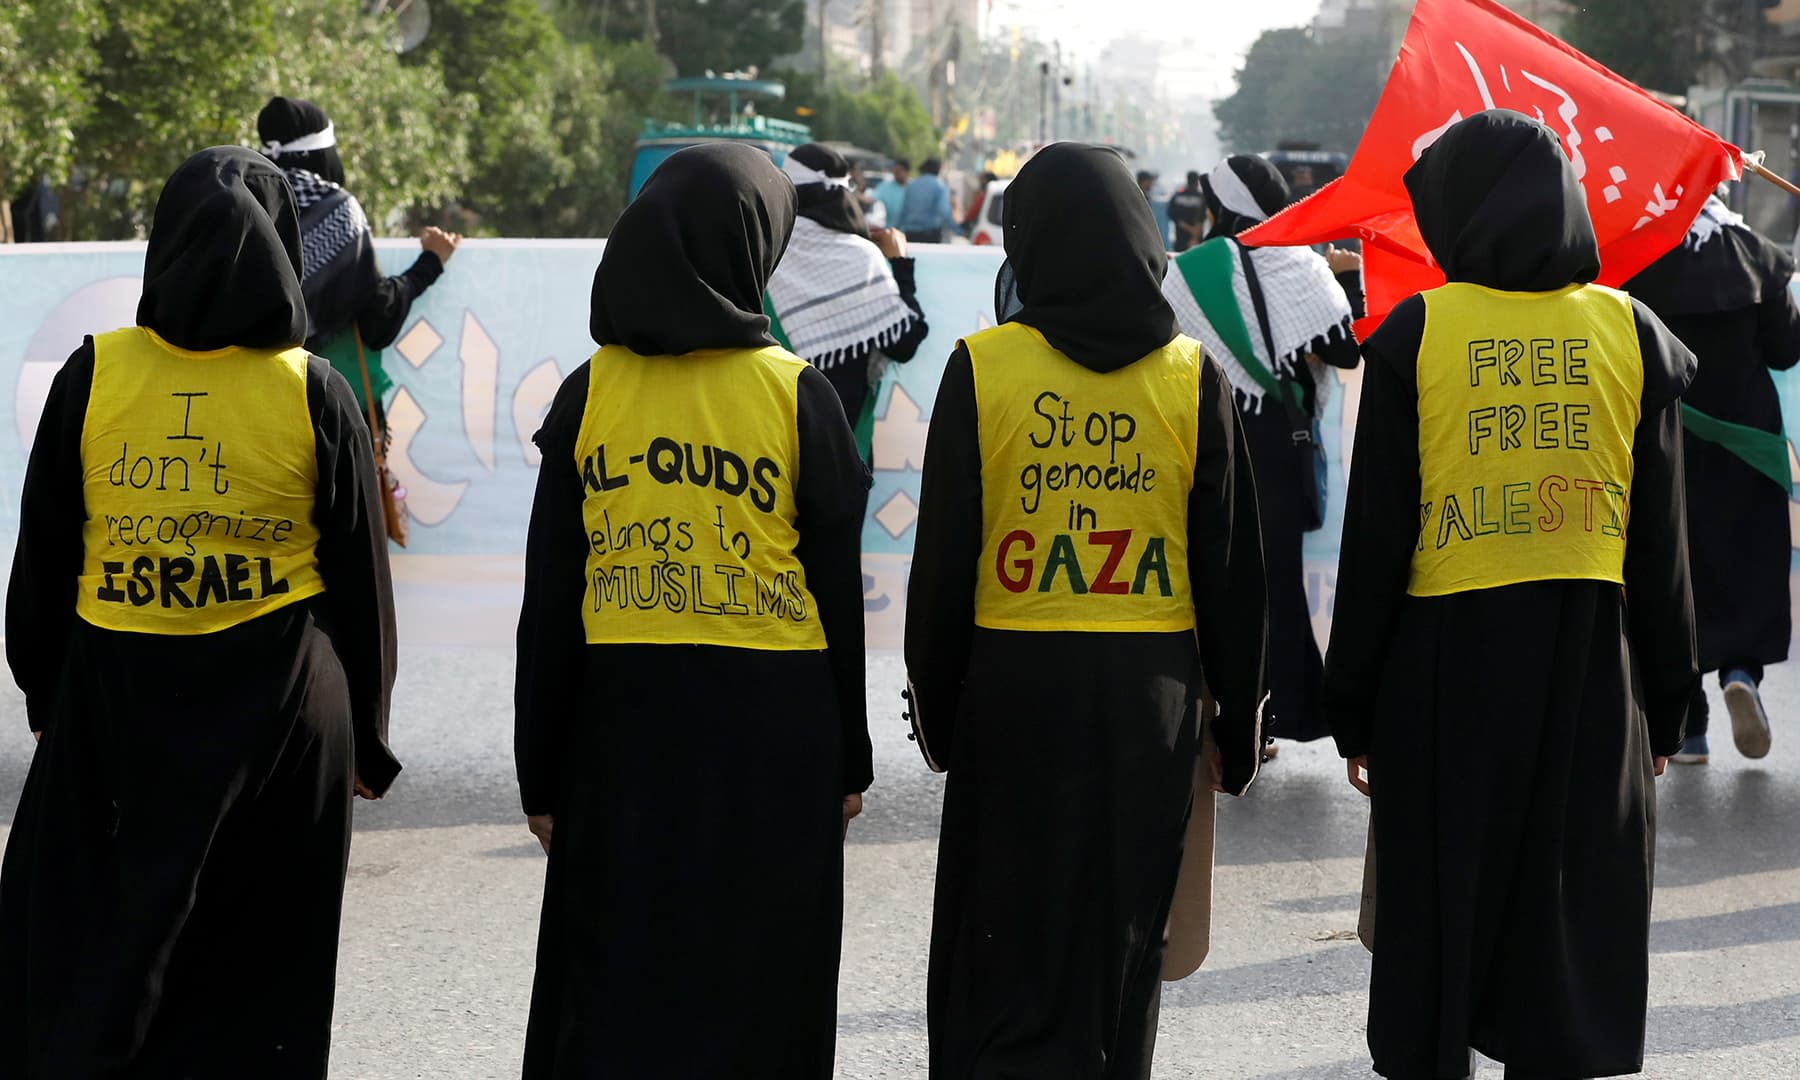 Shia Muslim supporters of the Imamia Student Organisation (ISO) are seen during a rally, marking al-Quds Day (Jerusalem Day), in Karachi on Friday. — Reuters